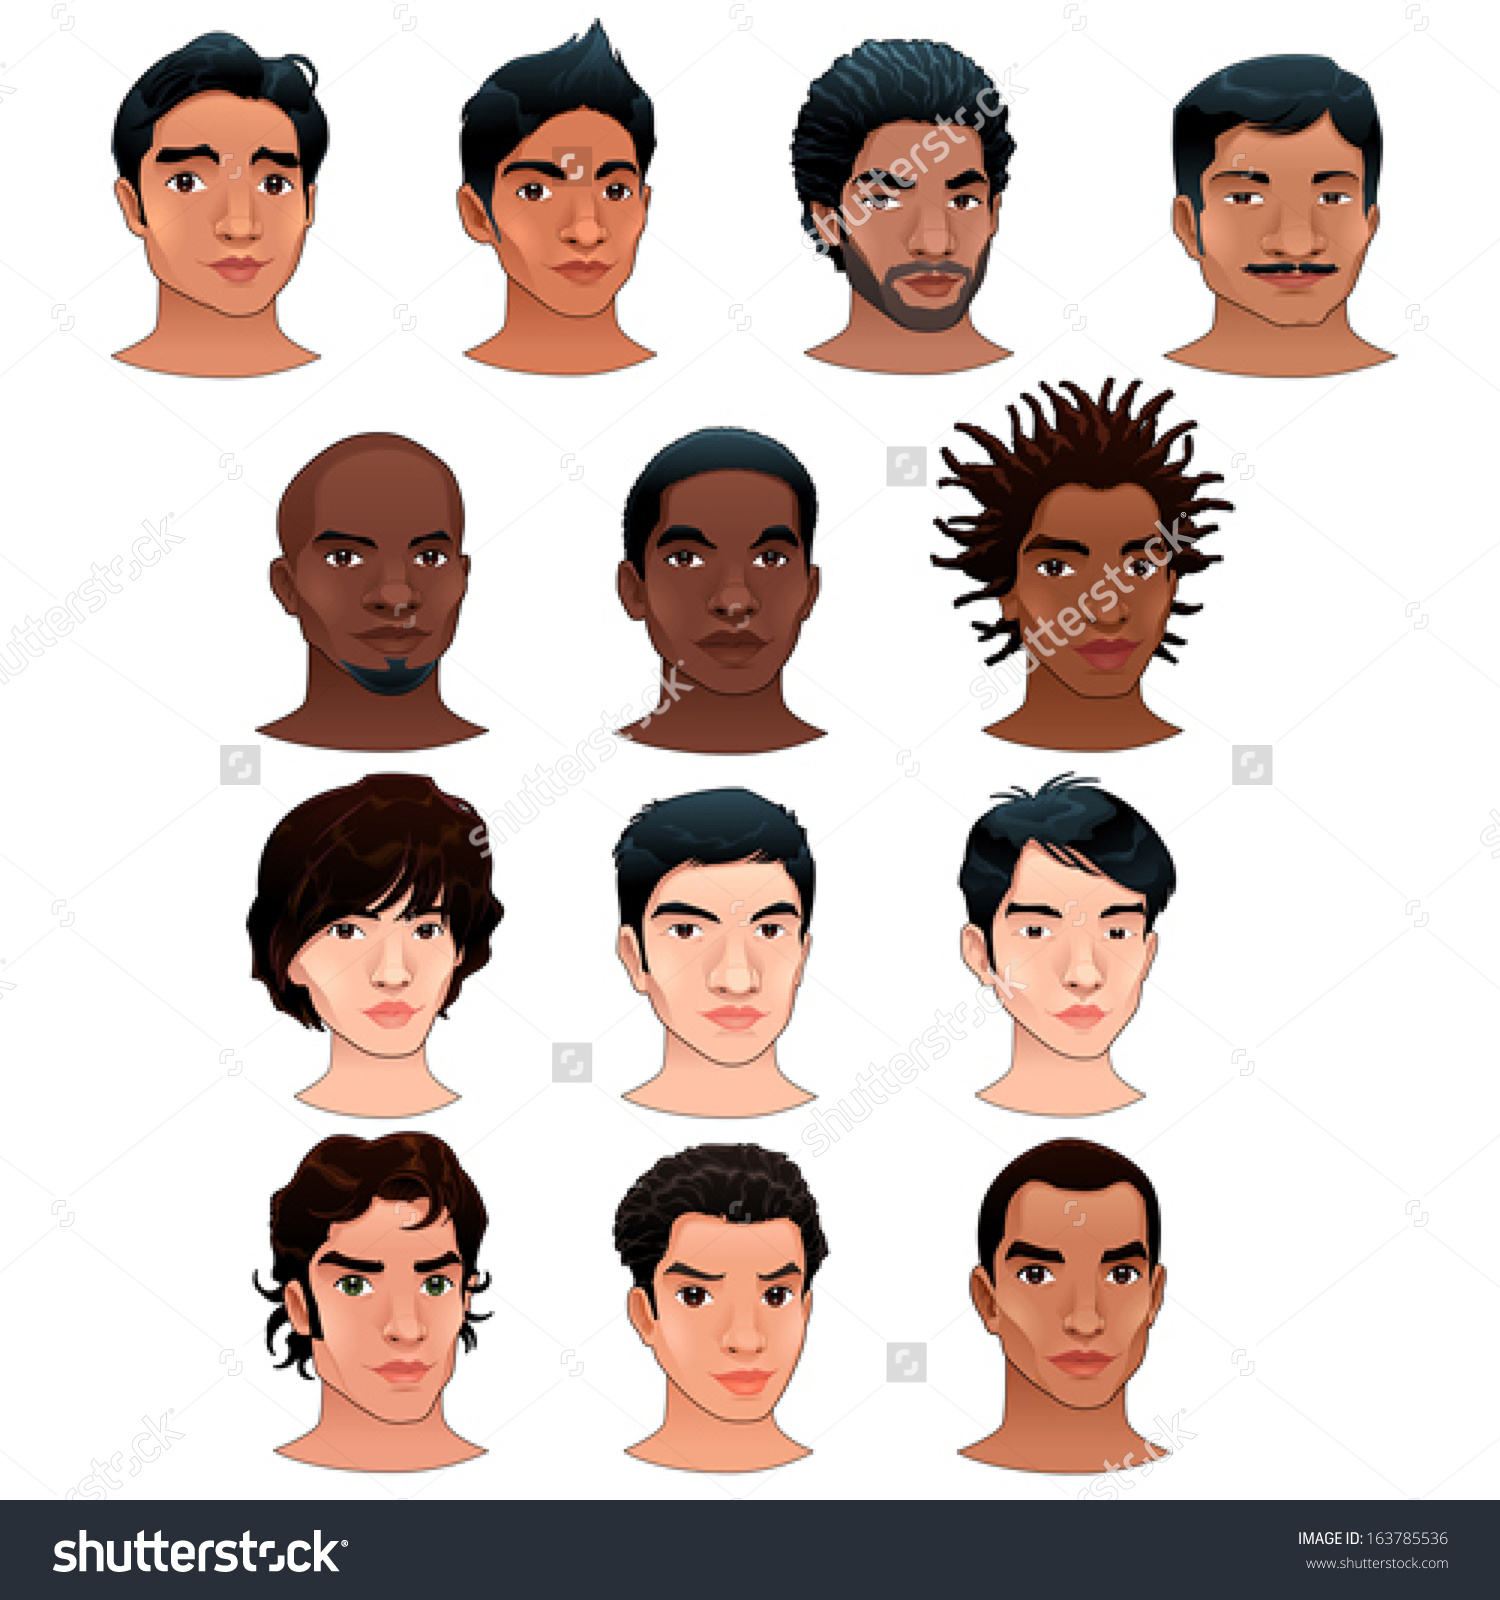 Crowd Of Indian Women Vector Avatars Stock Vector: Asian Indian Character Clipart Icons Man